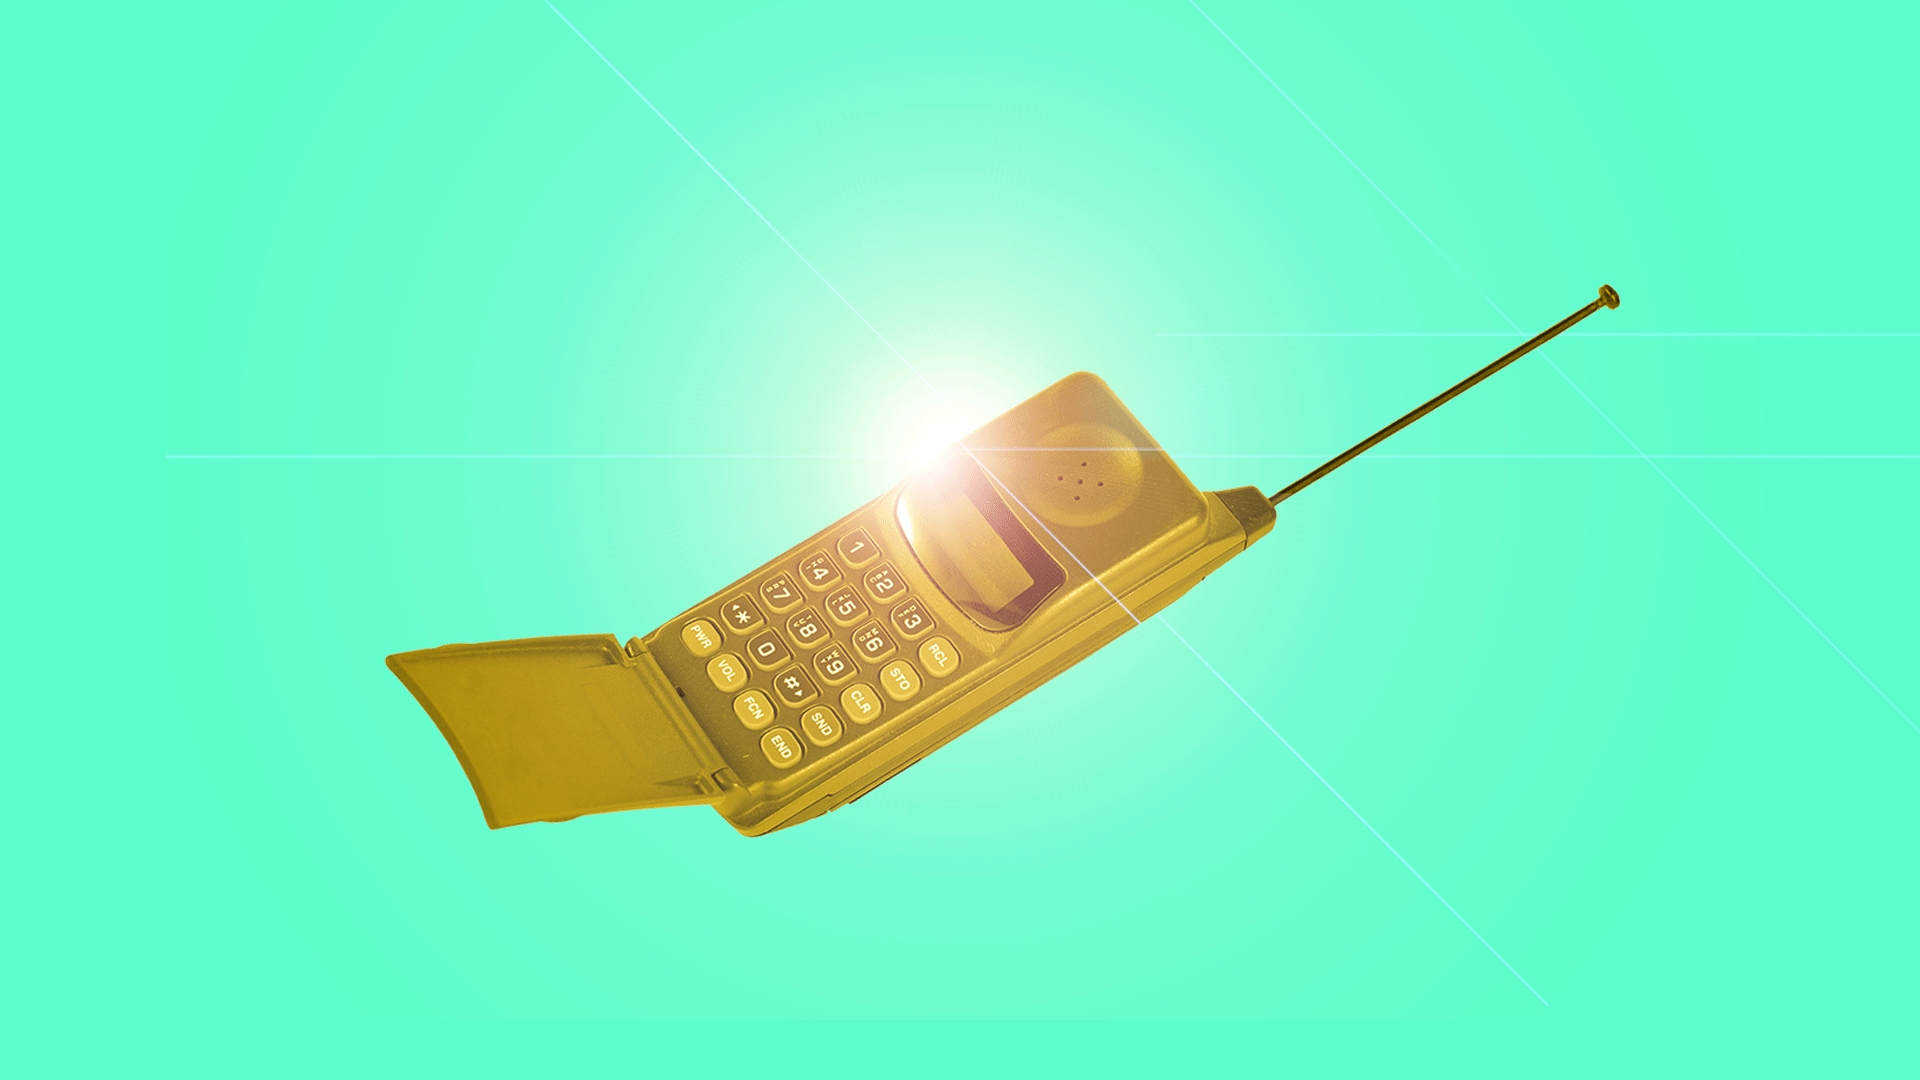 An old-school cell phone made out of gold